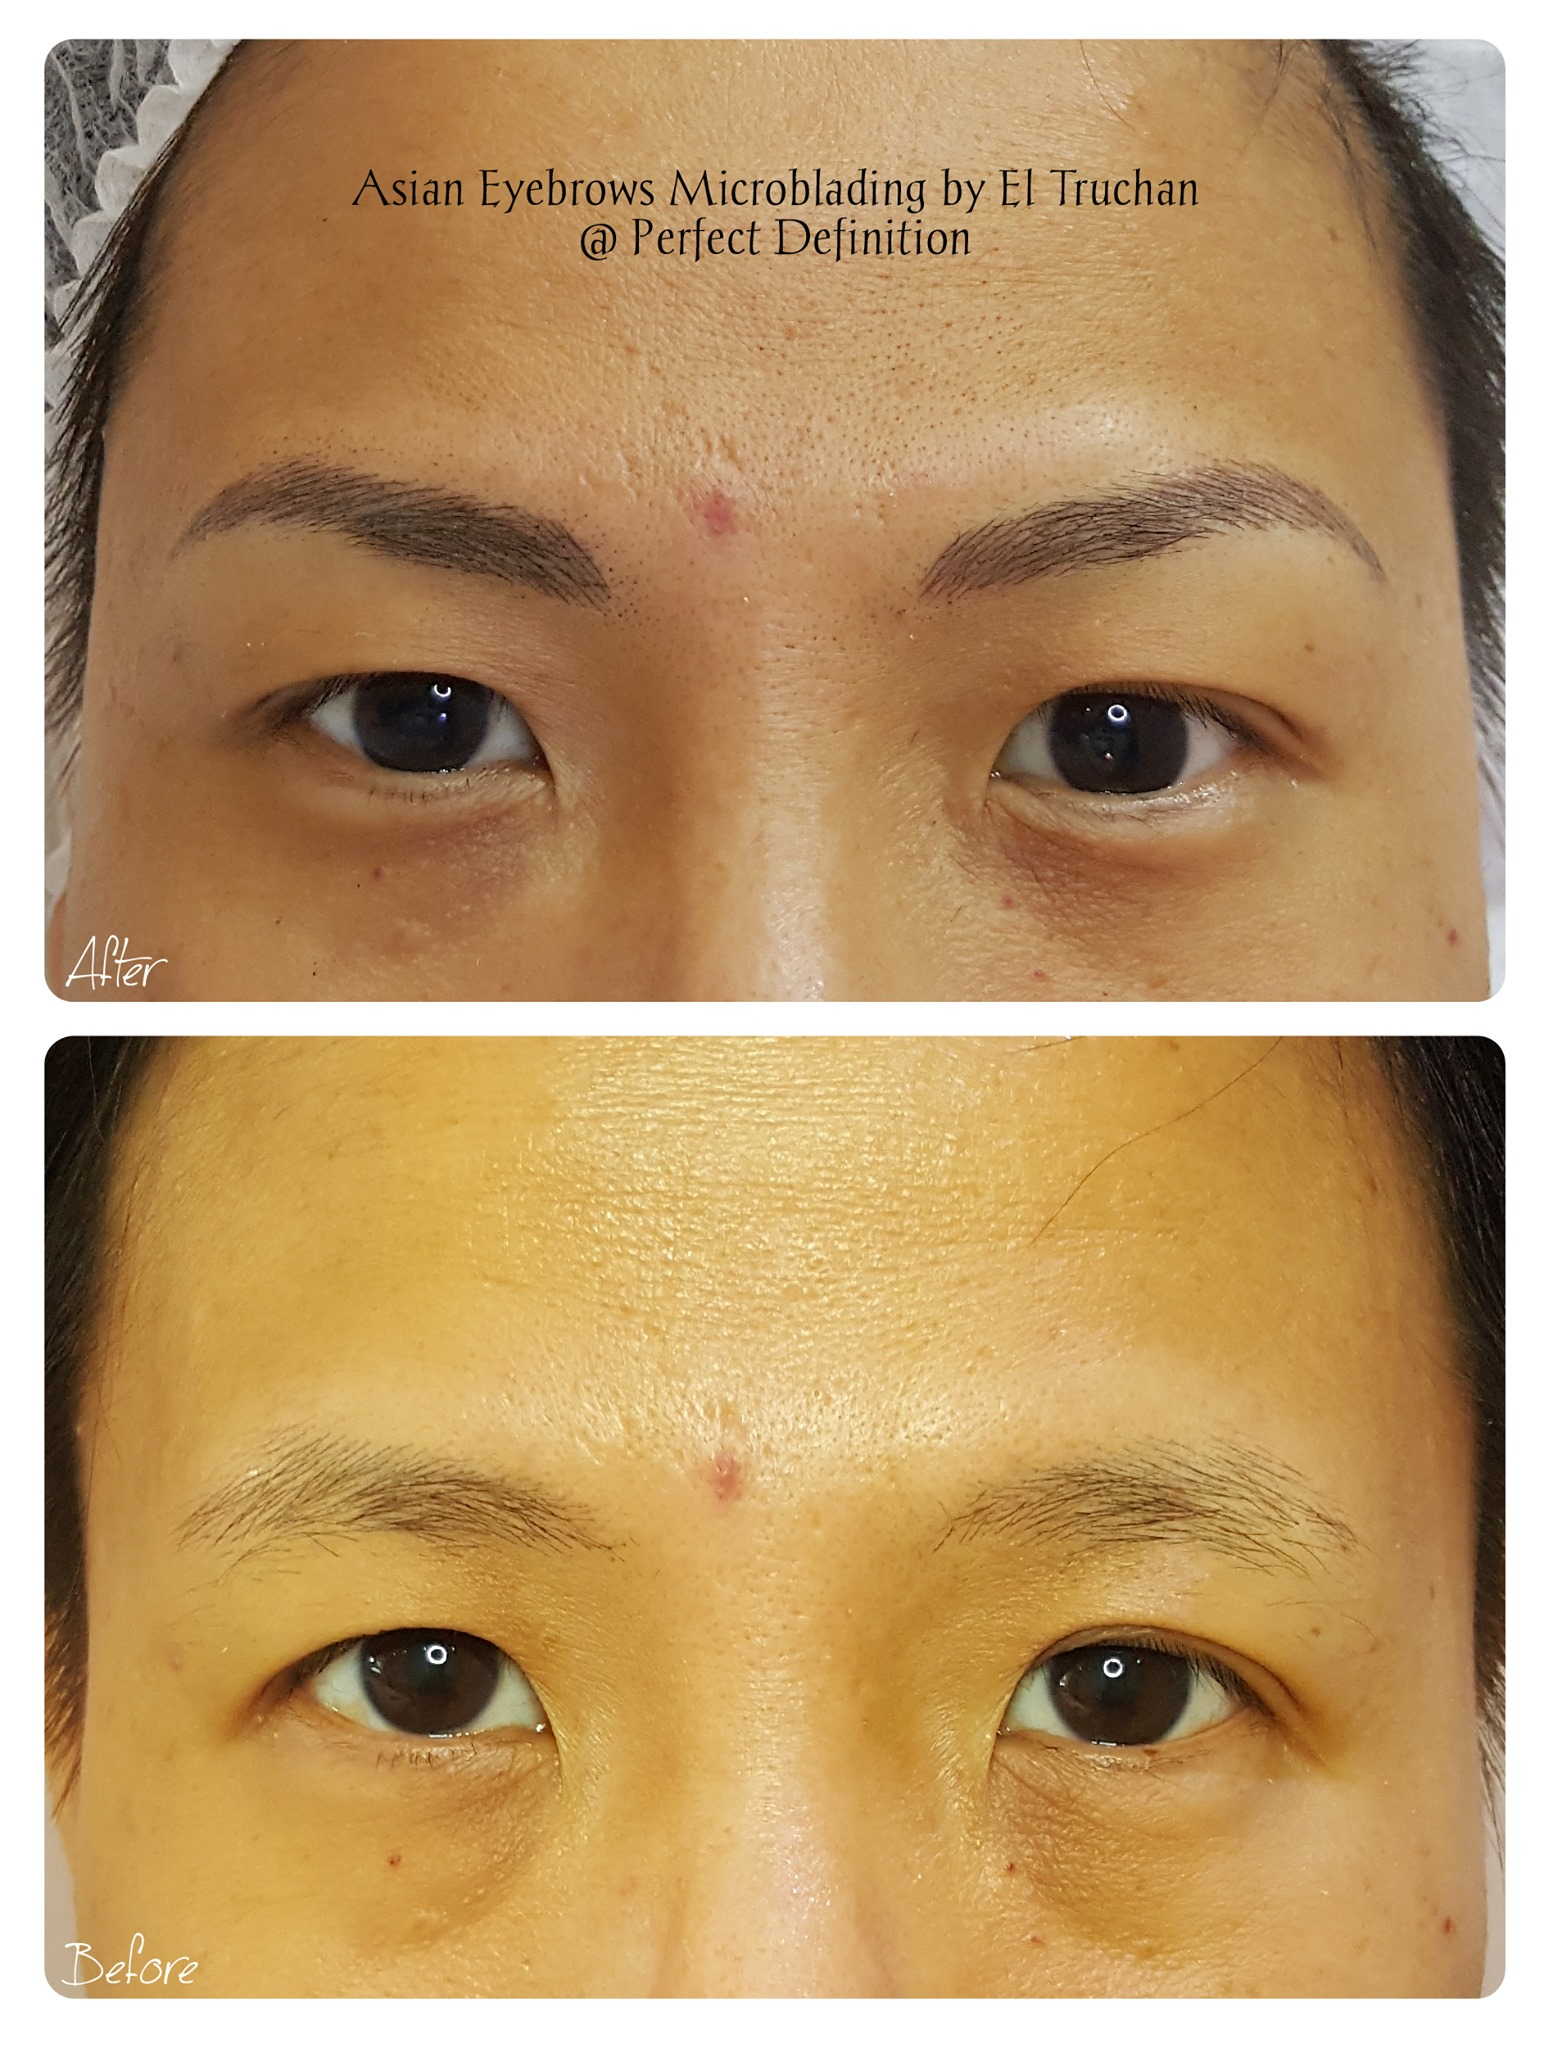 Asian Eyebrows Microblading by El Trucha